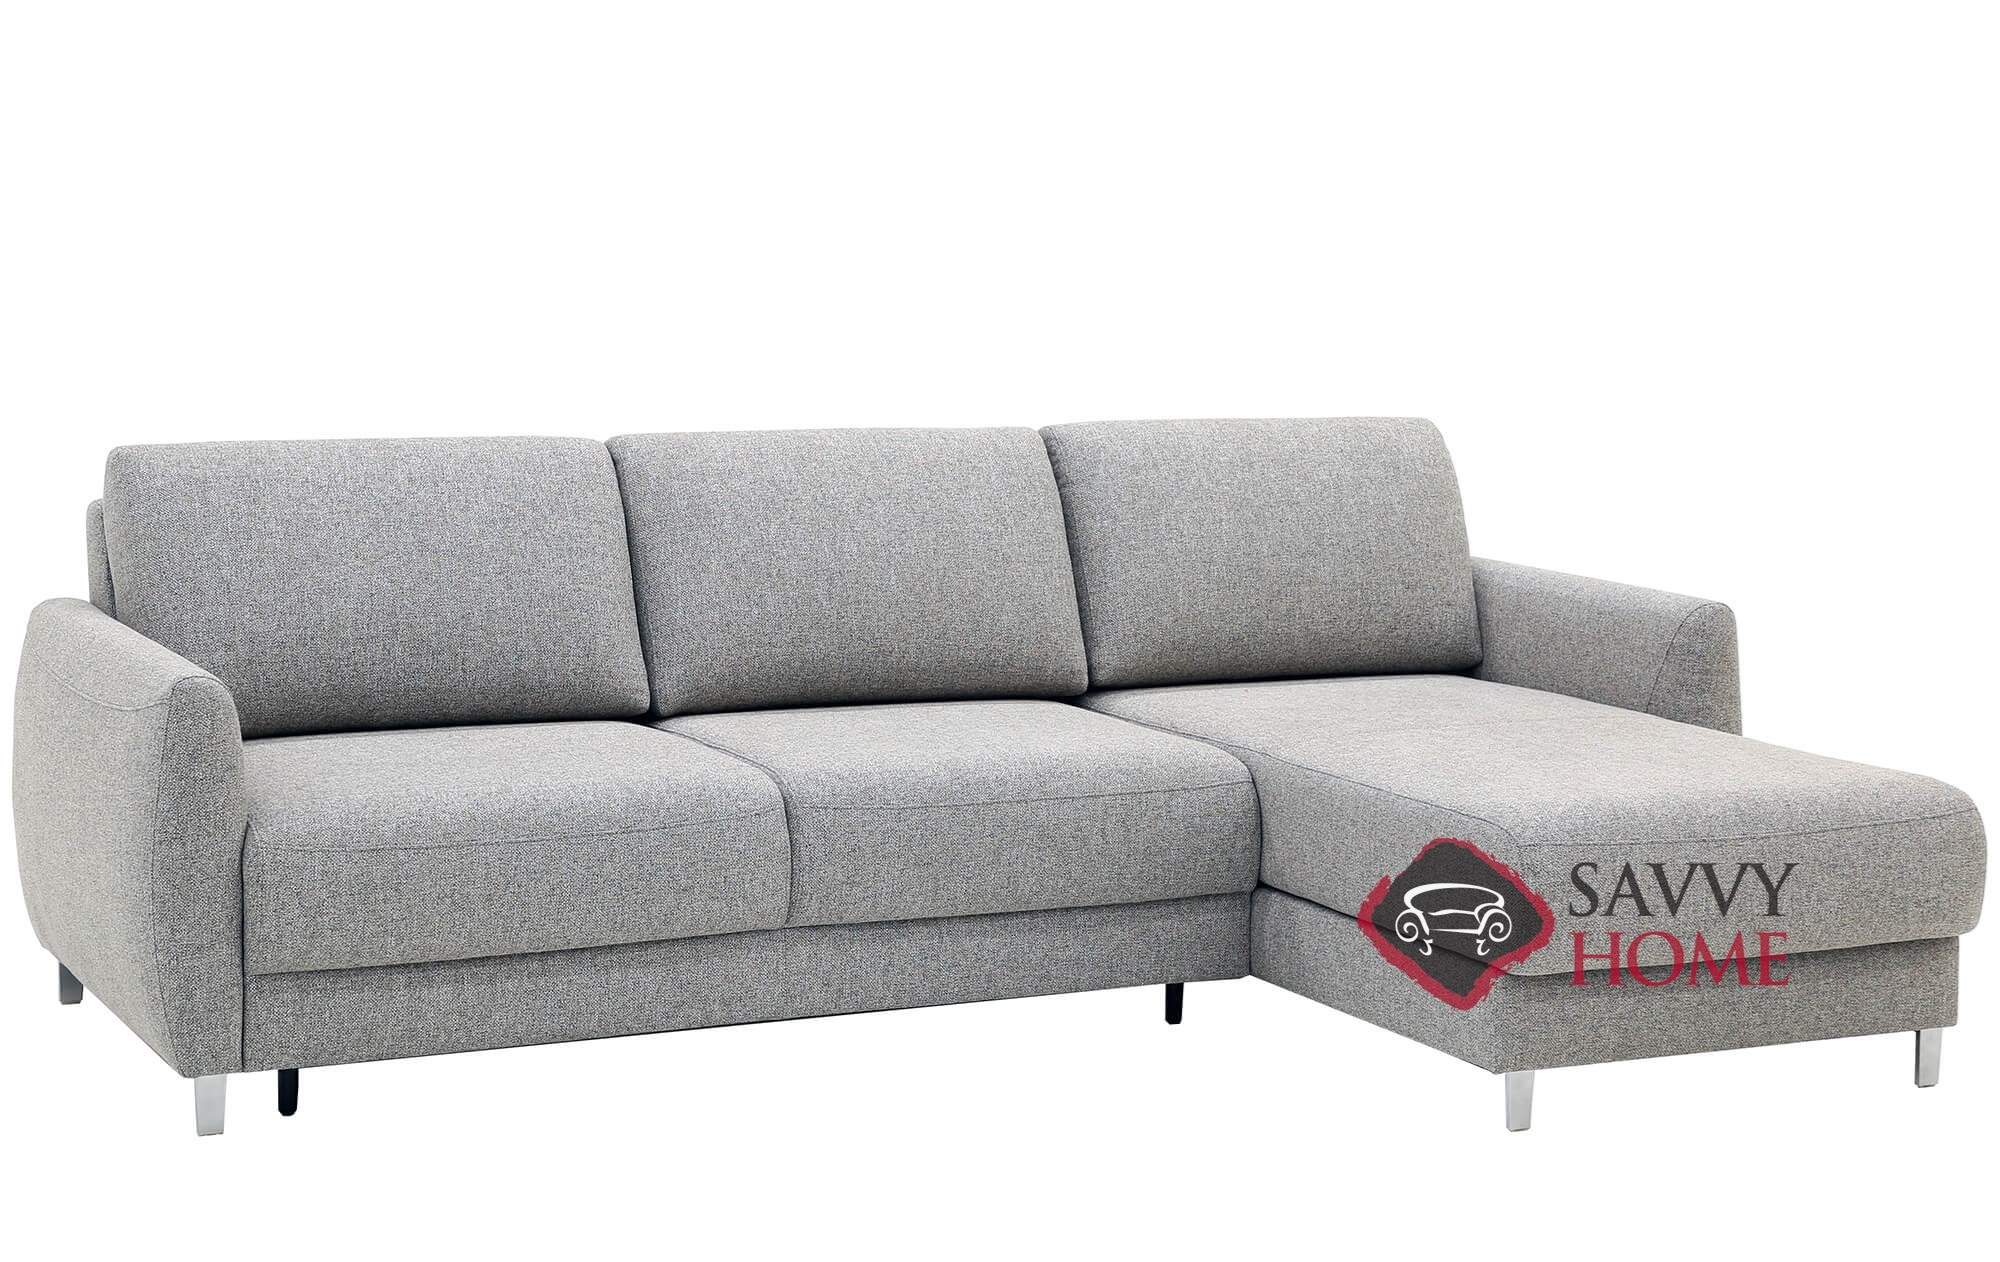 Quick Ship Delta Fabric Sleeper Sofas Chaise Sectional In By Luonto With Fast Shipping Savvyhomestore Com